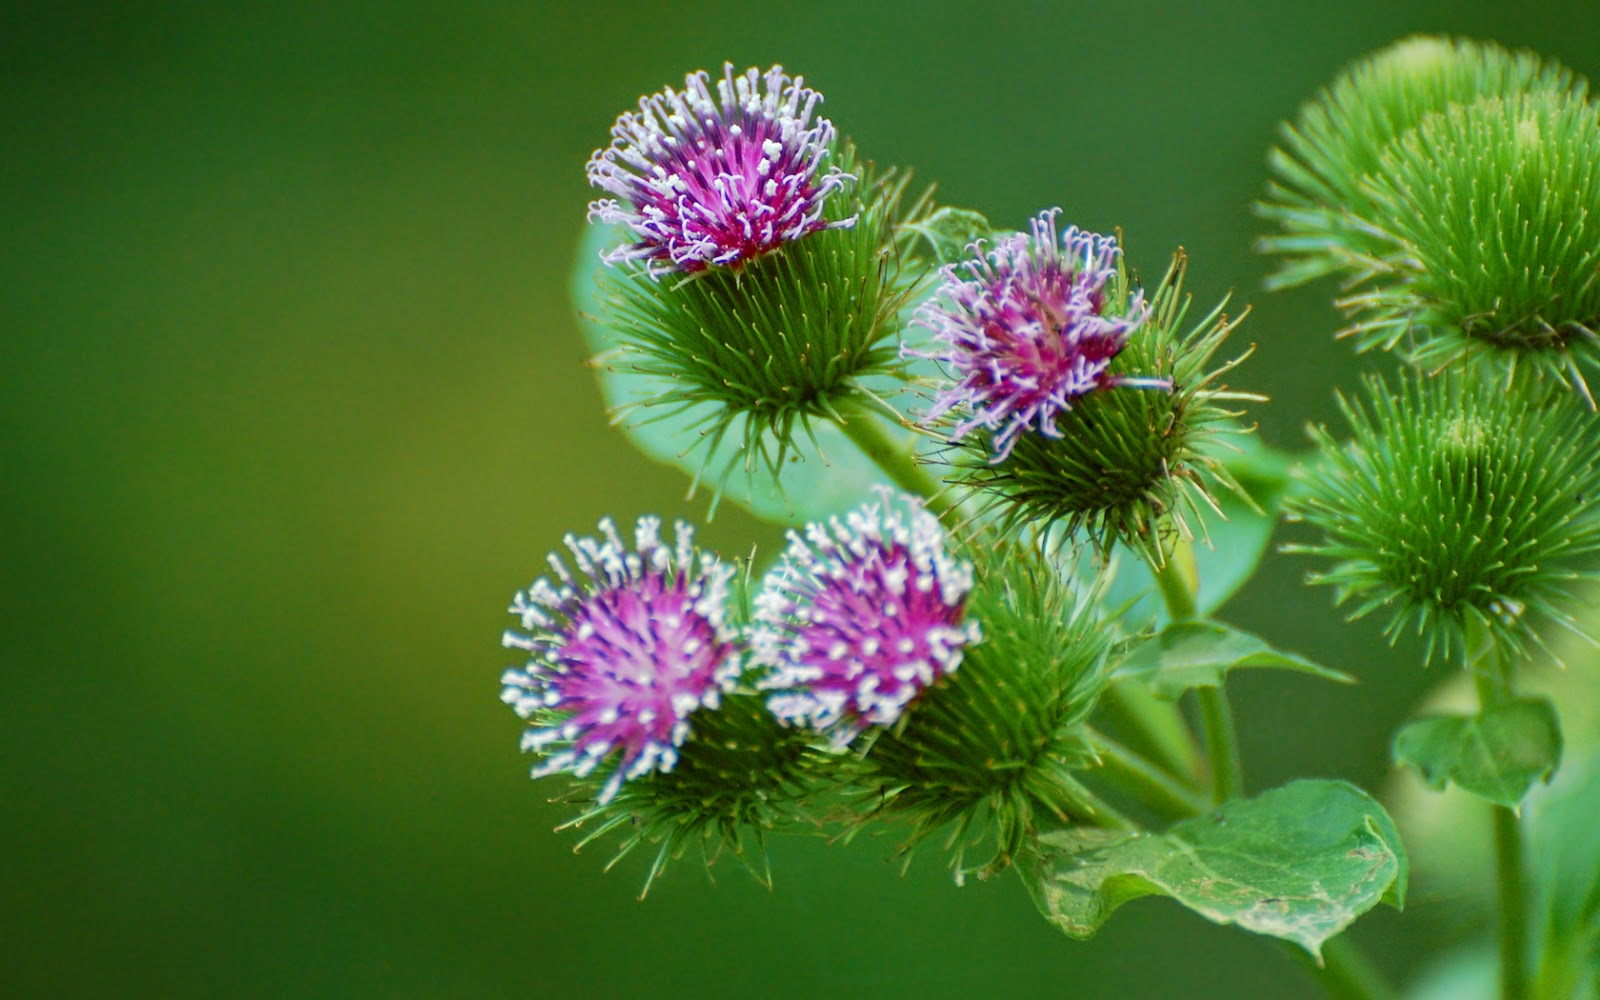 Benefits Of Burdock (Arctium Lappa) For Health